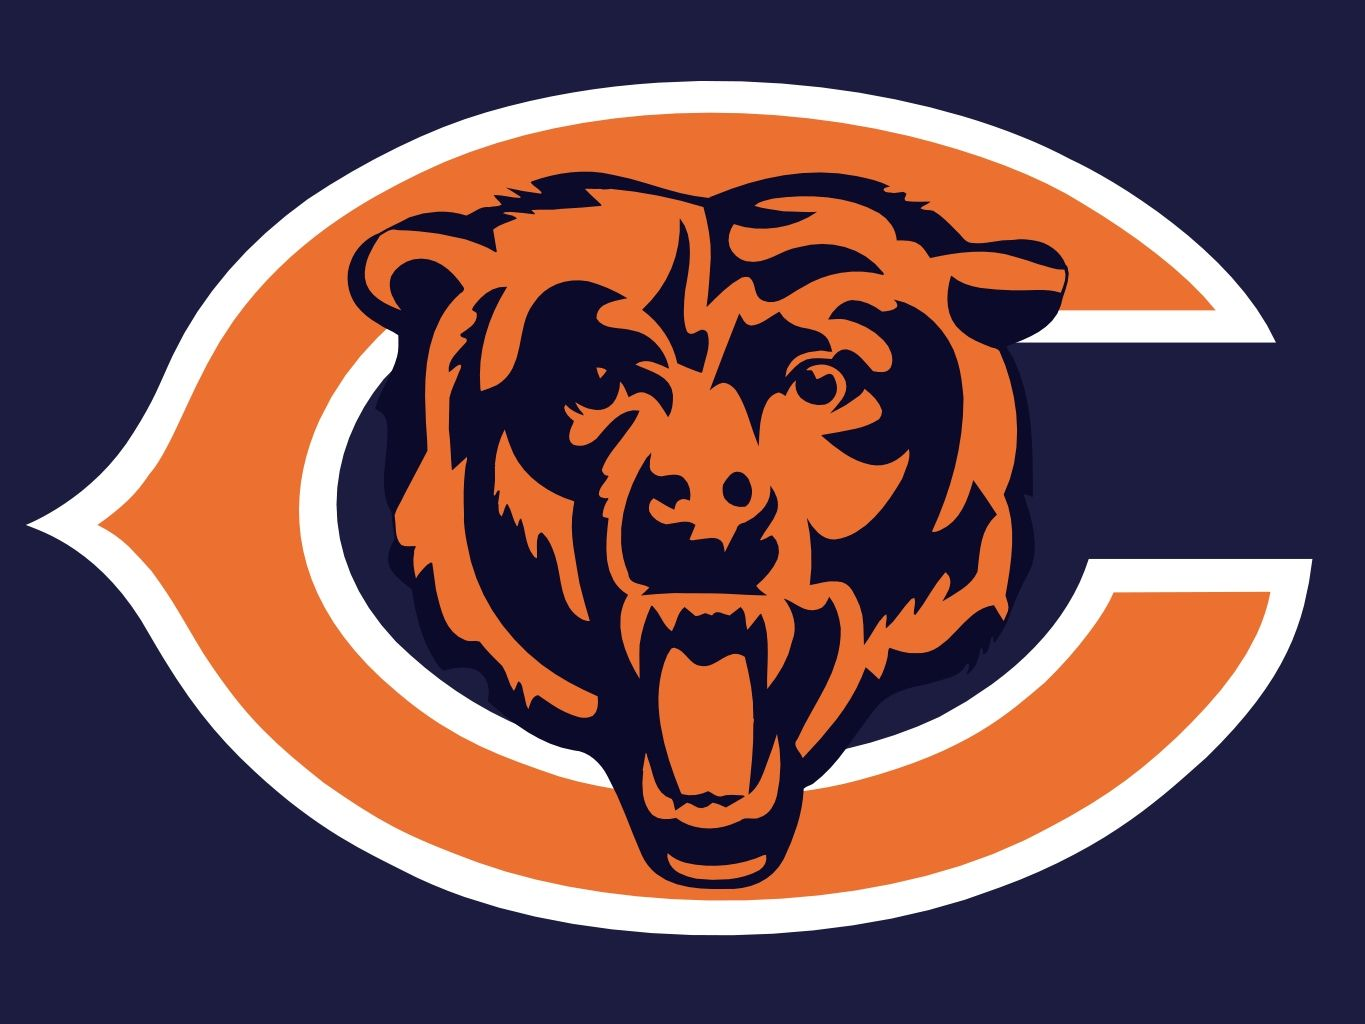 Bear Down Chicago Bears Instrumental Sound Clip And Quote Chicago Bears Logo Chicago Sports Teams Chicago Bears Wallpaper